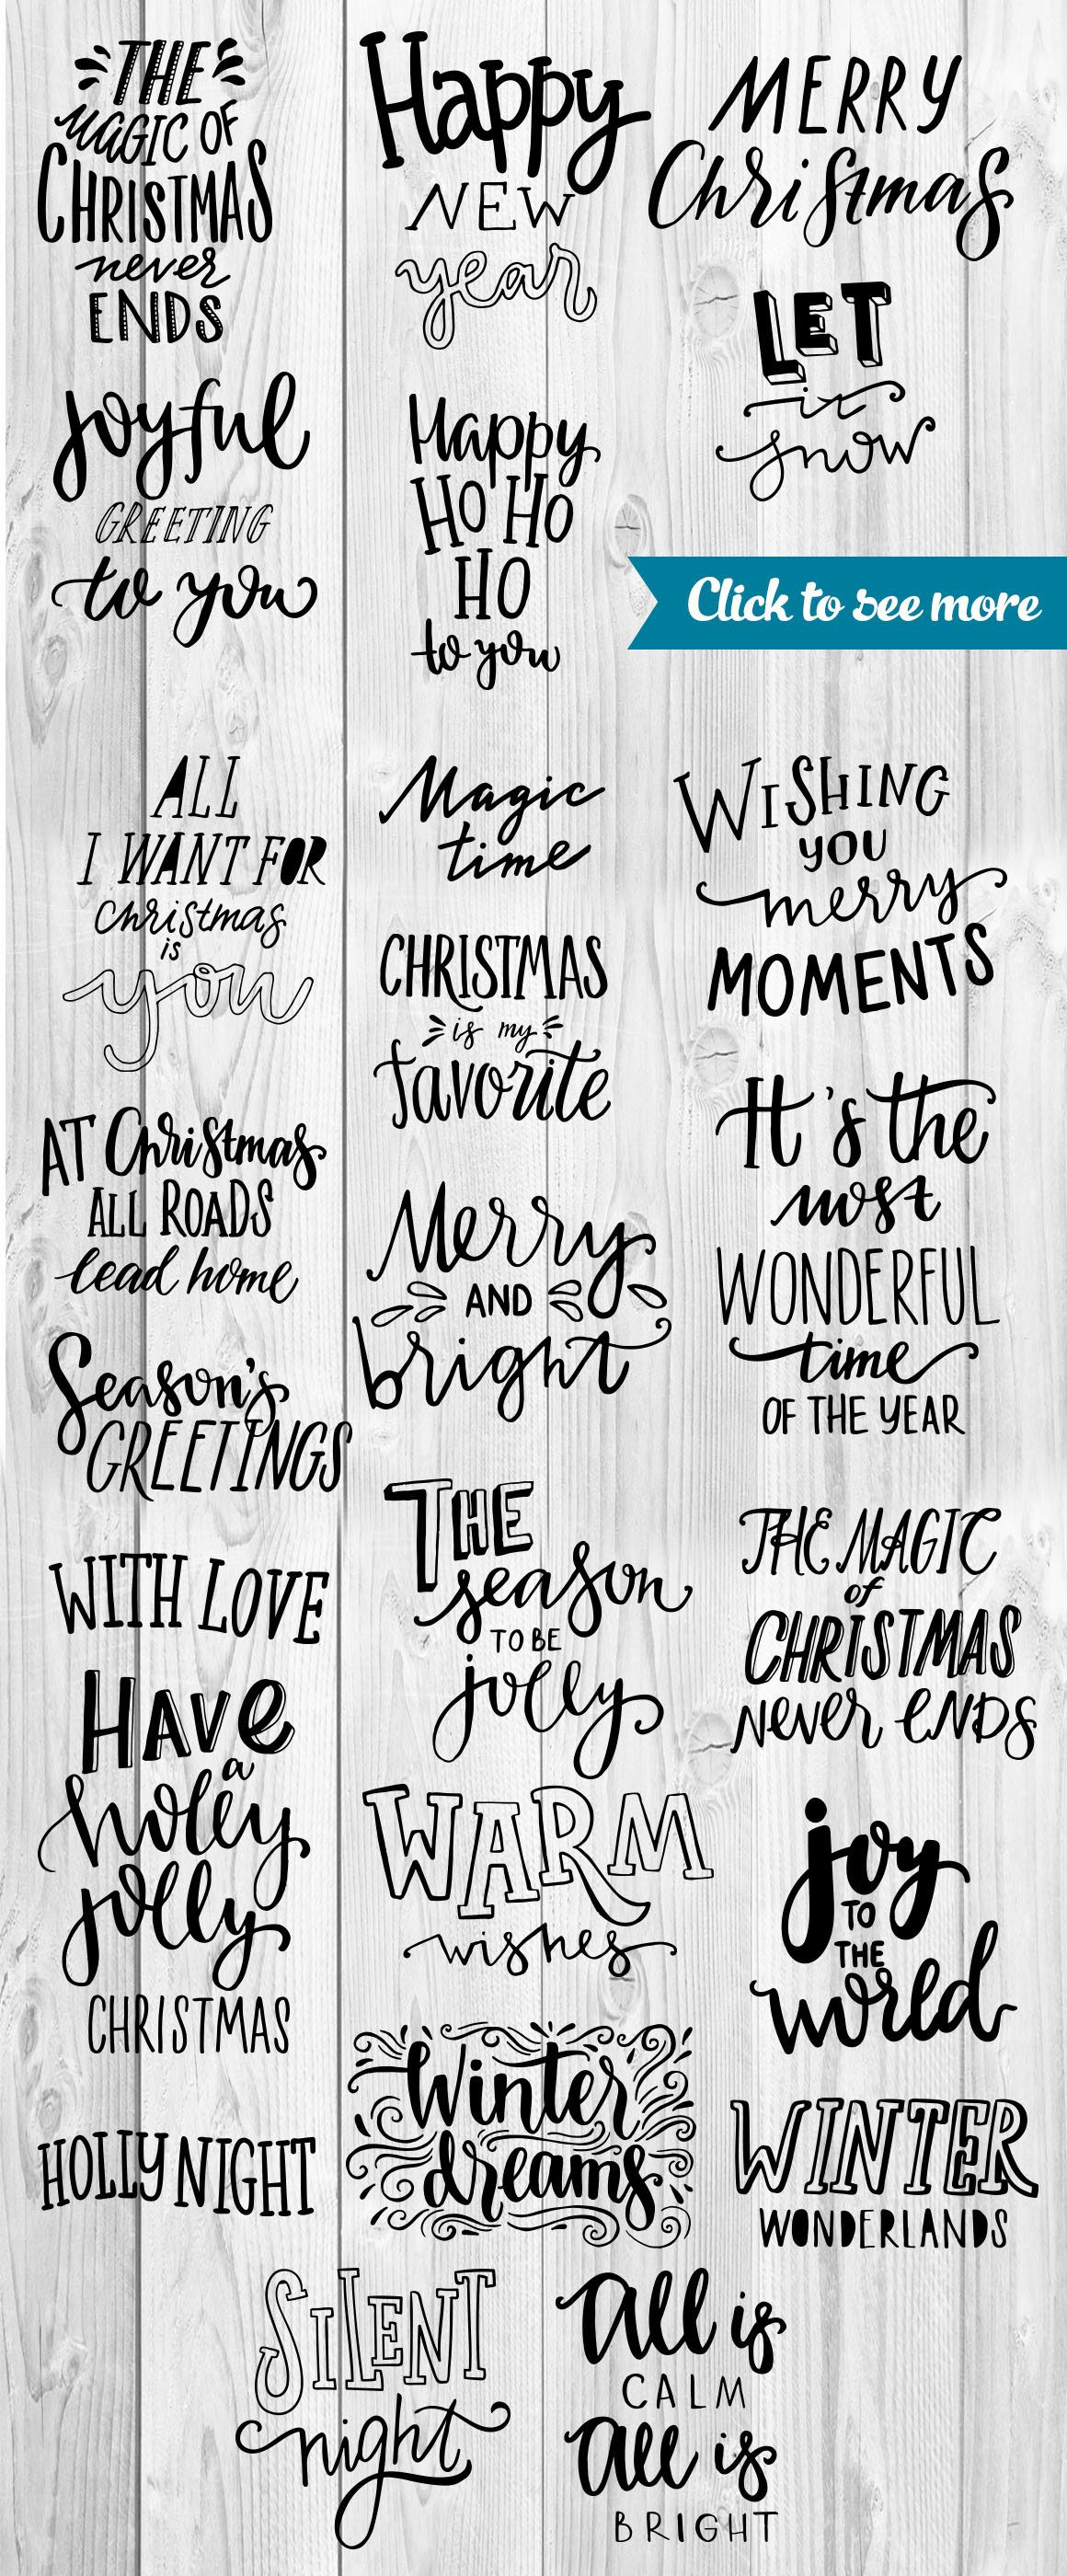 Mind Cards Cards Holidays Vector Decorativeelements Re Are Hand Painted Re Are Hand Painted Holidays Vector Sayings Family Sayings cards Christmas Sayings For Cards